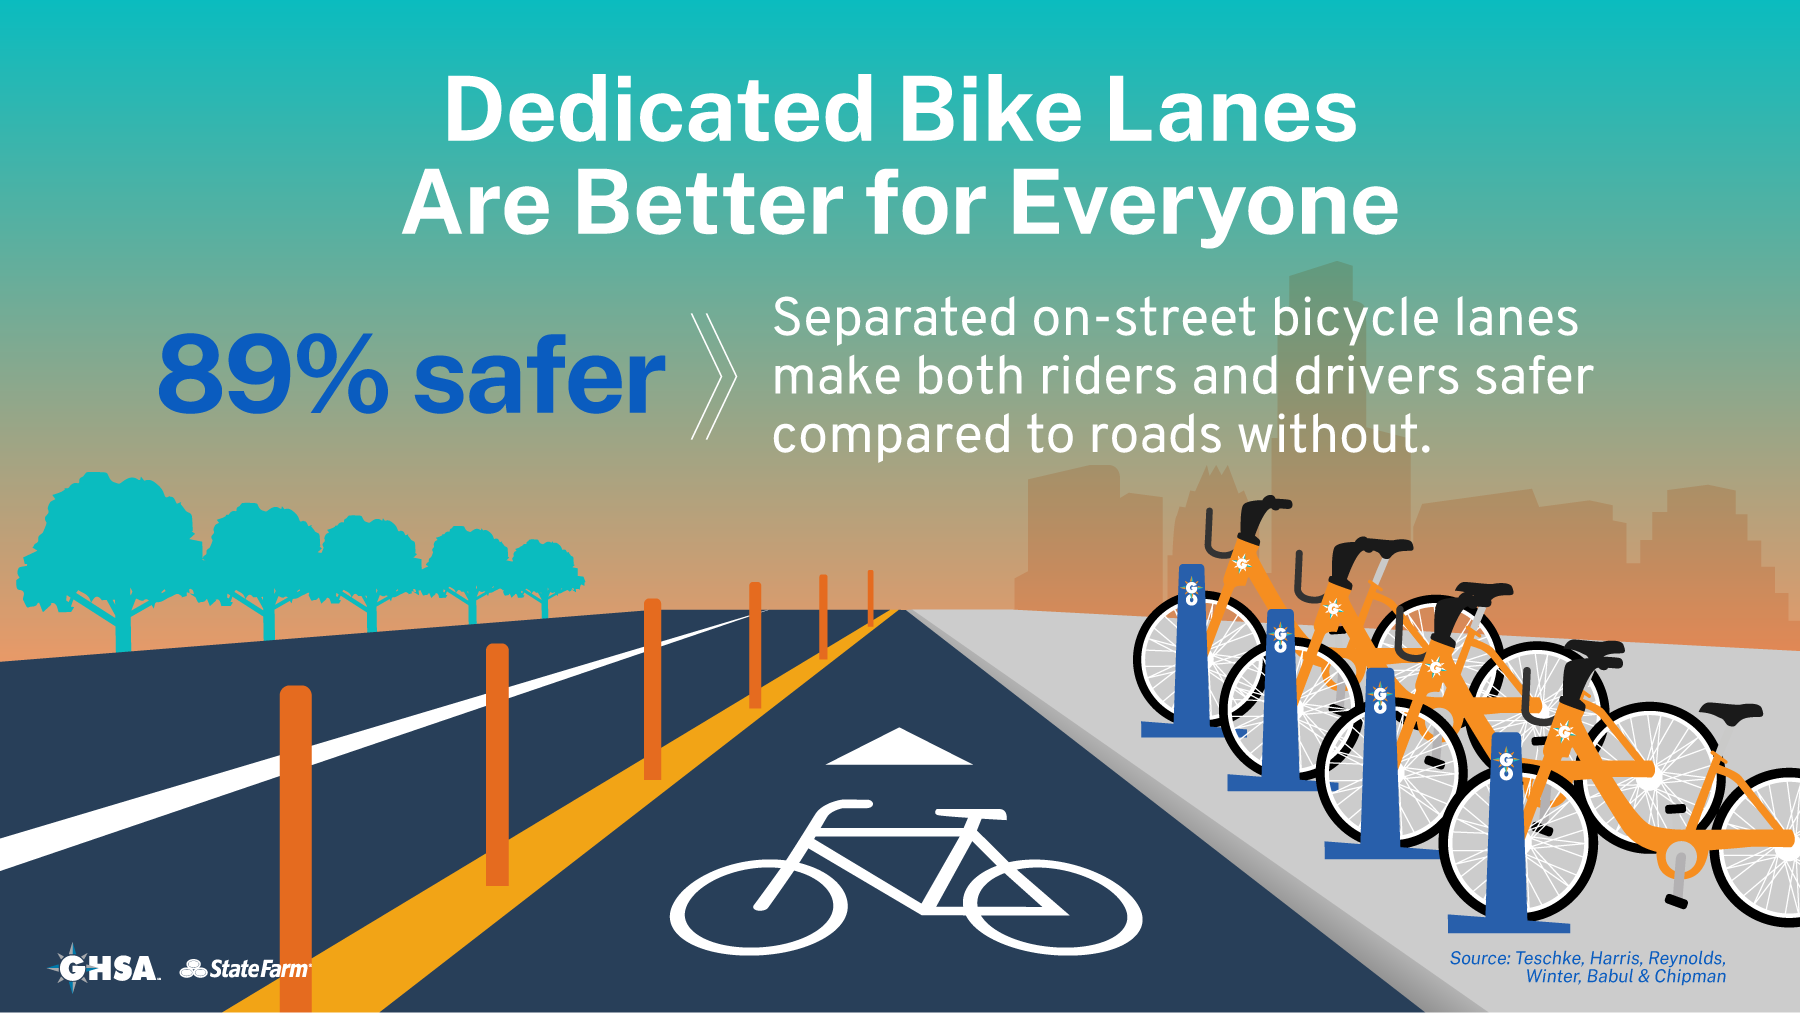 Dedicated Bike Lanes Are Better for Everyone